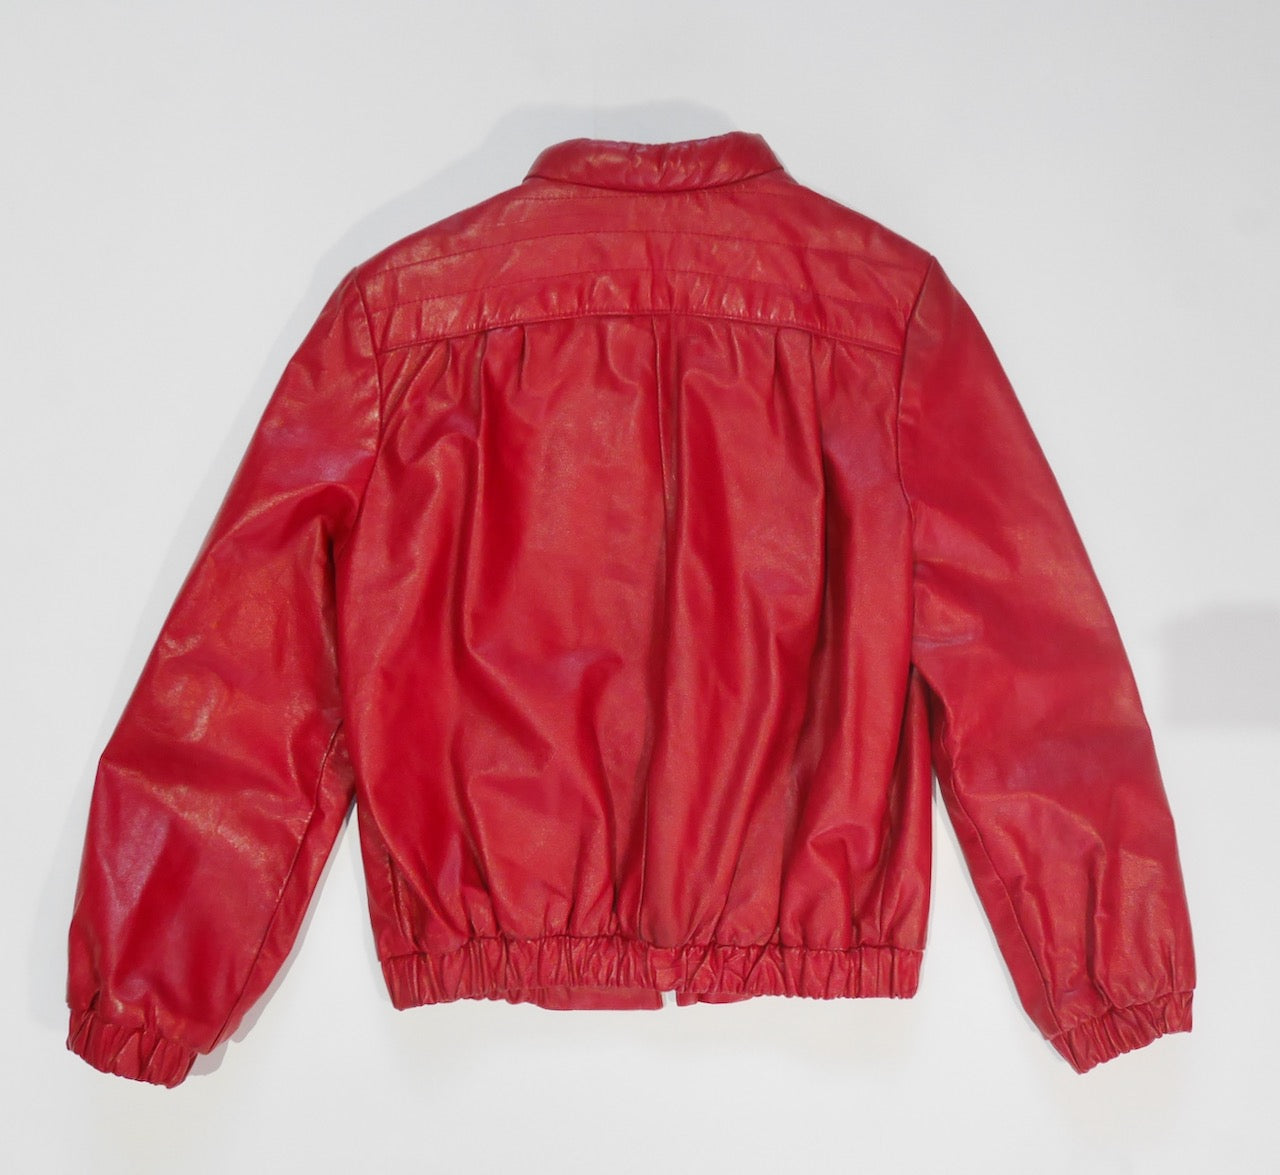 1980s Red Leather Jacket, Sz. S/M